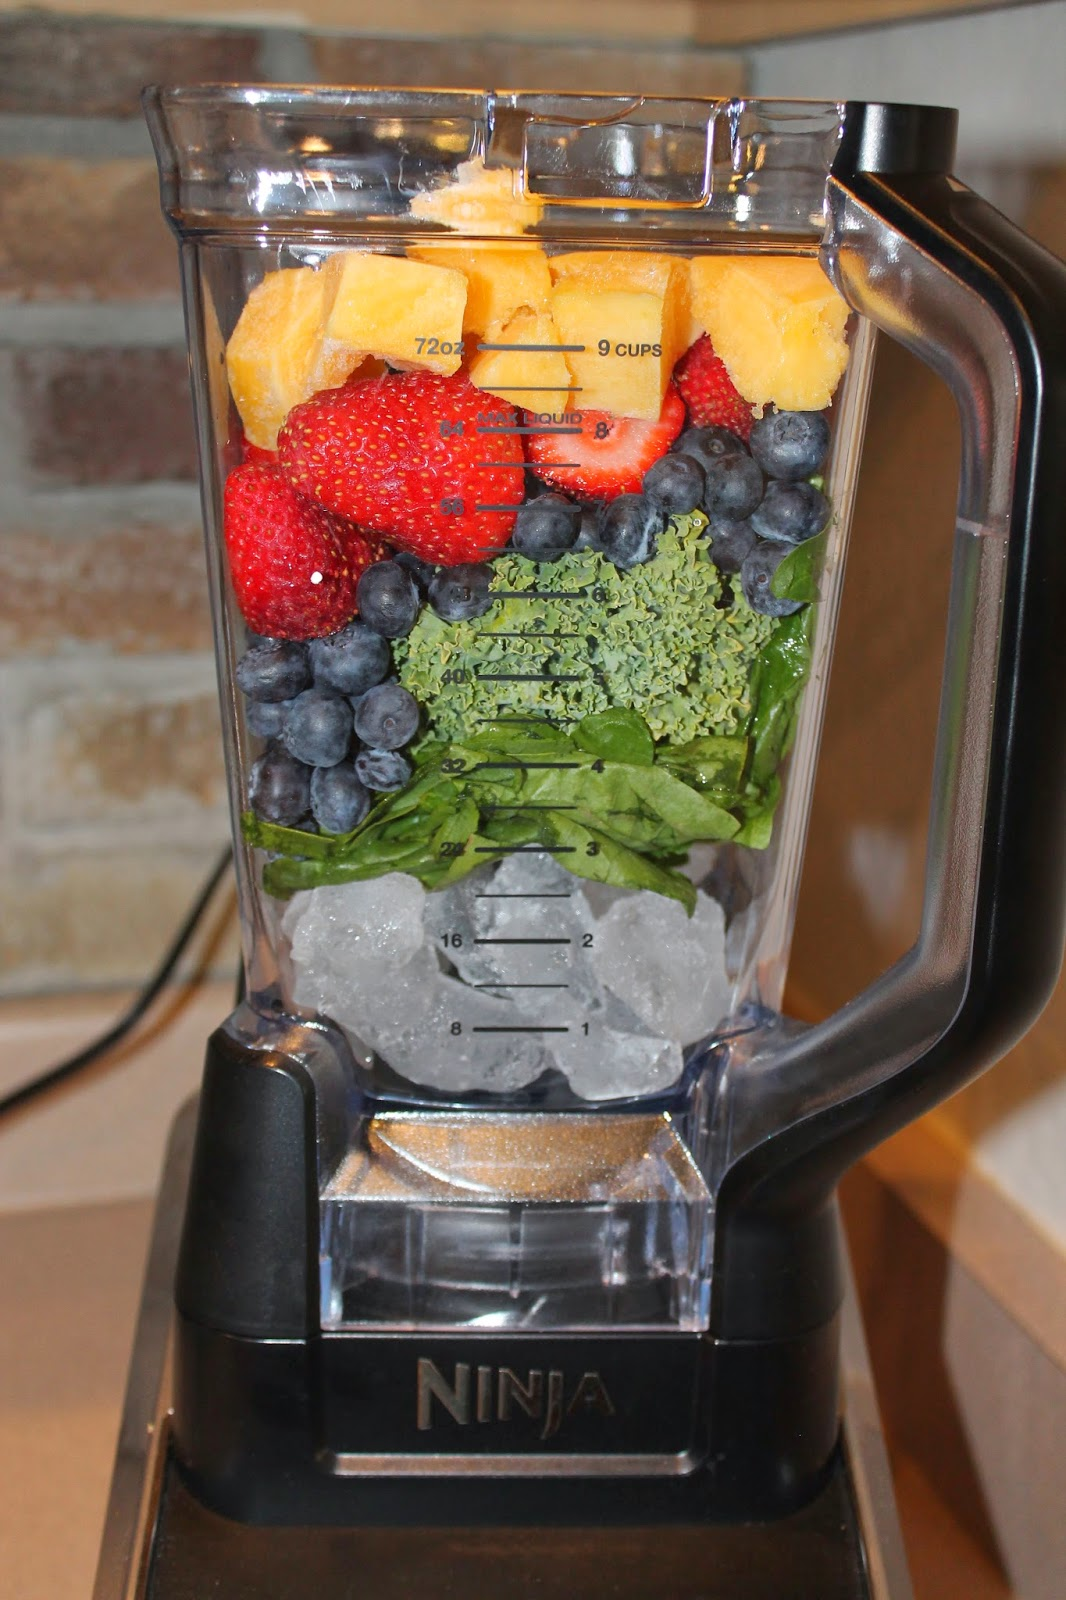 Ate Loved Ninja Blender Smoothie Recipes